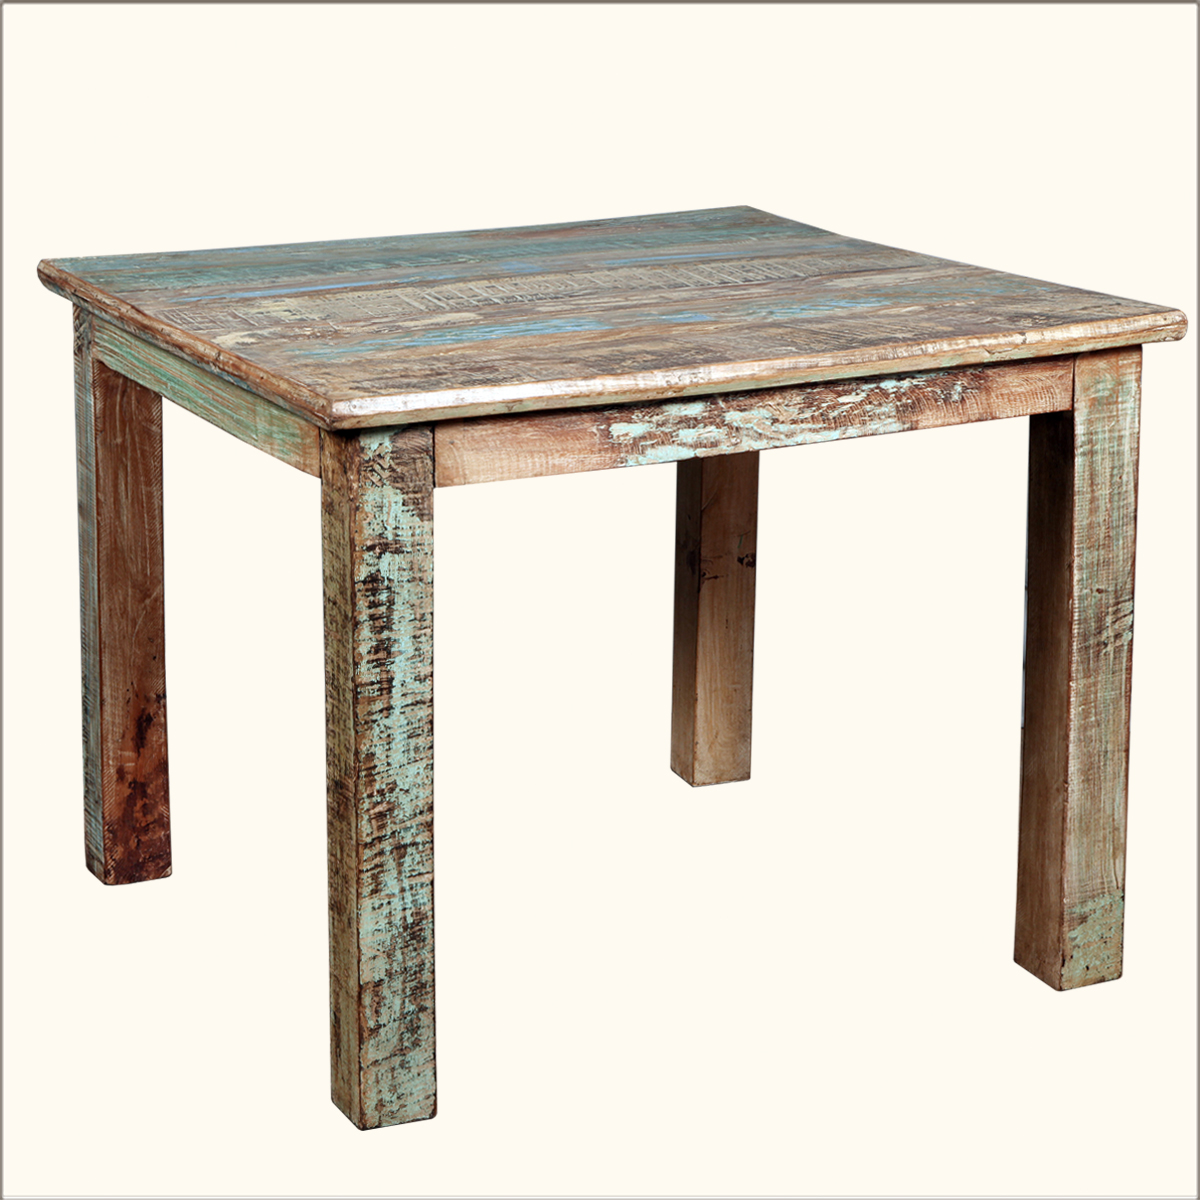 wood distressed 40 square kitchen dining table furniture ebay